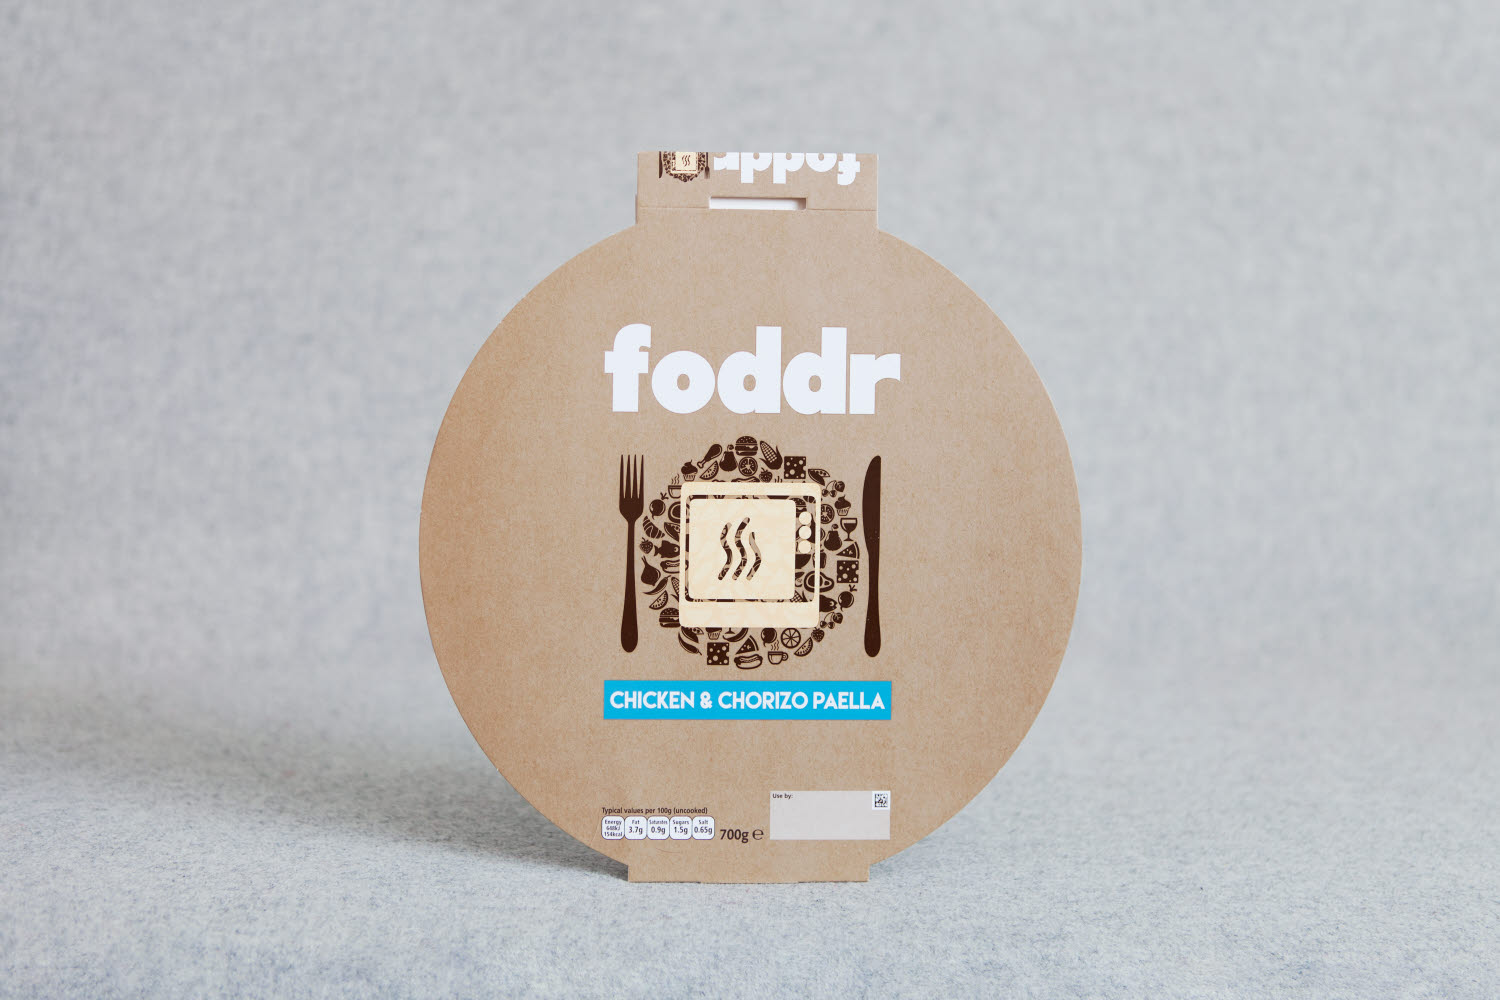 Foddr delivery packaging made of paperboard